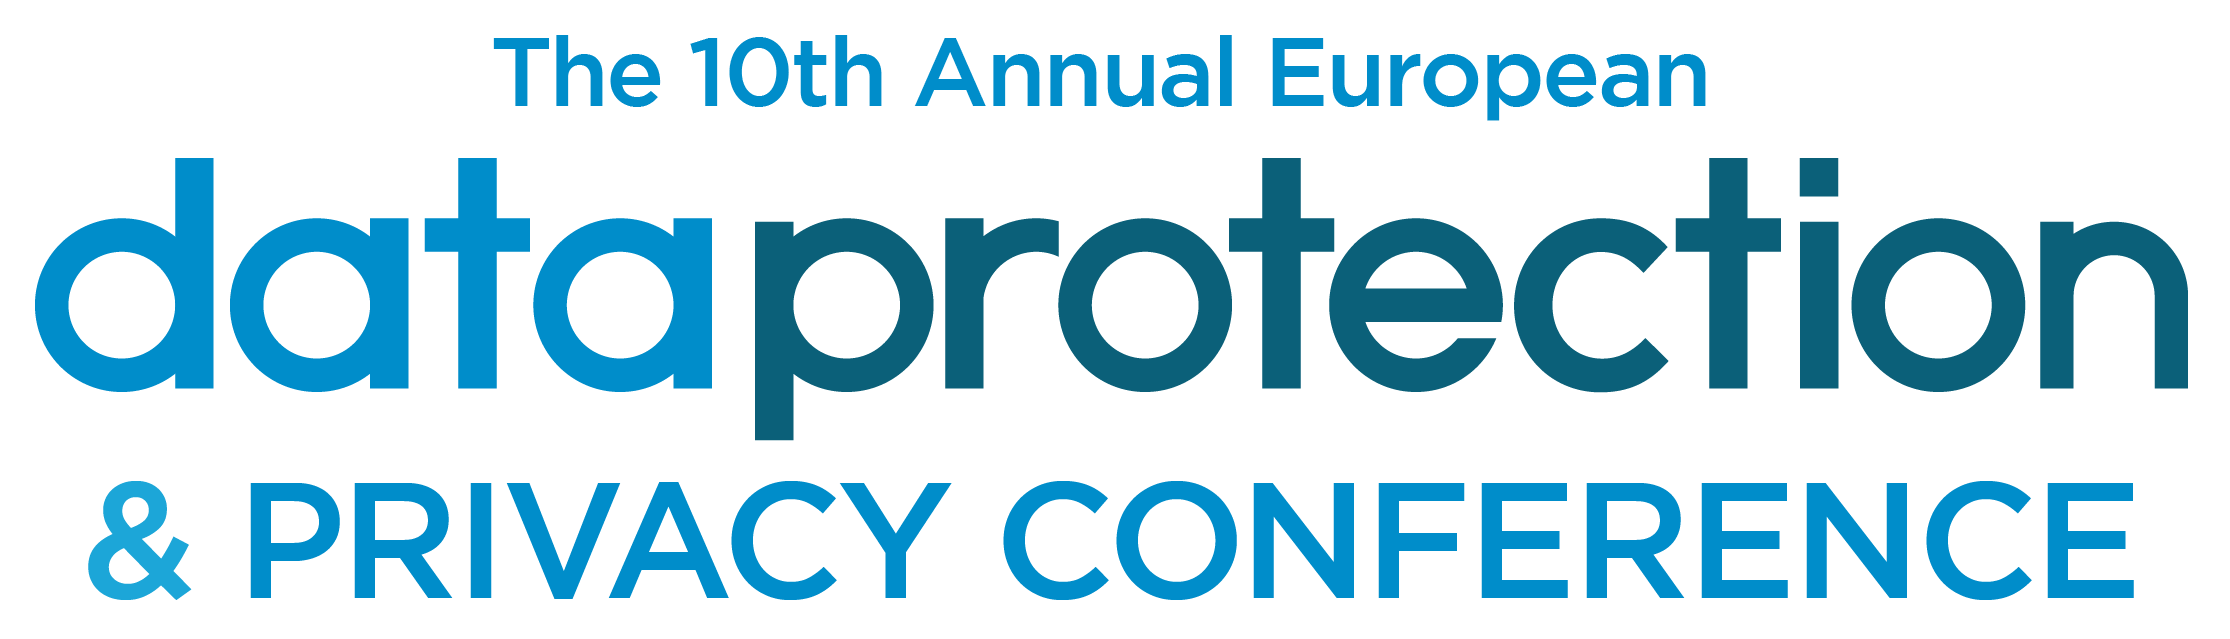 european data protection and privacy conference logo